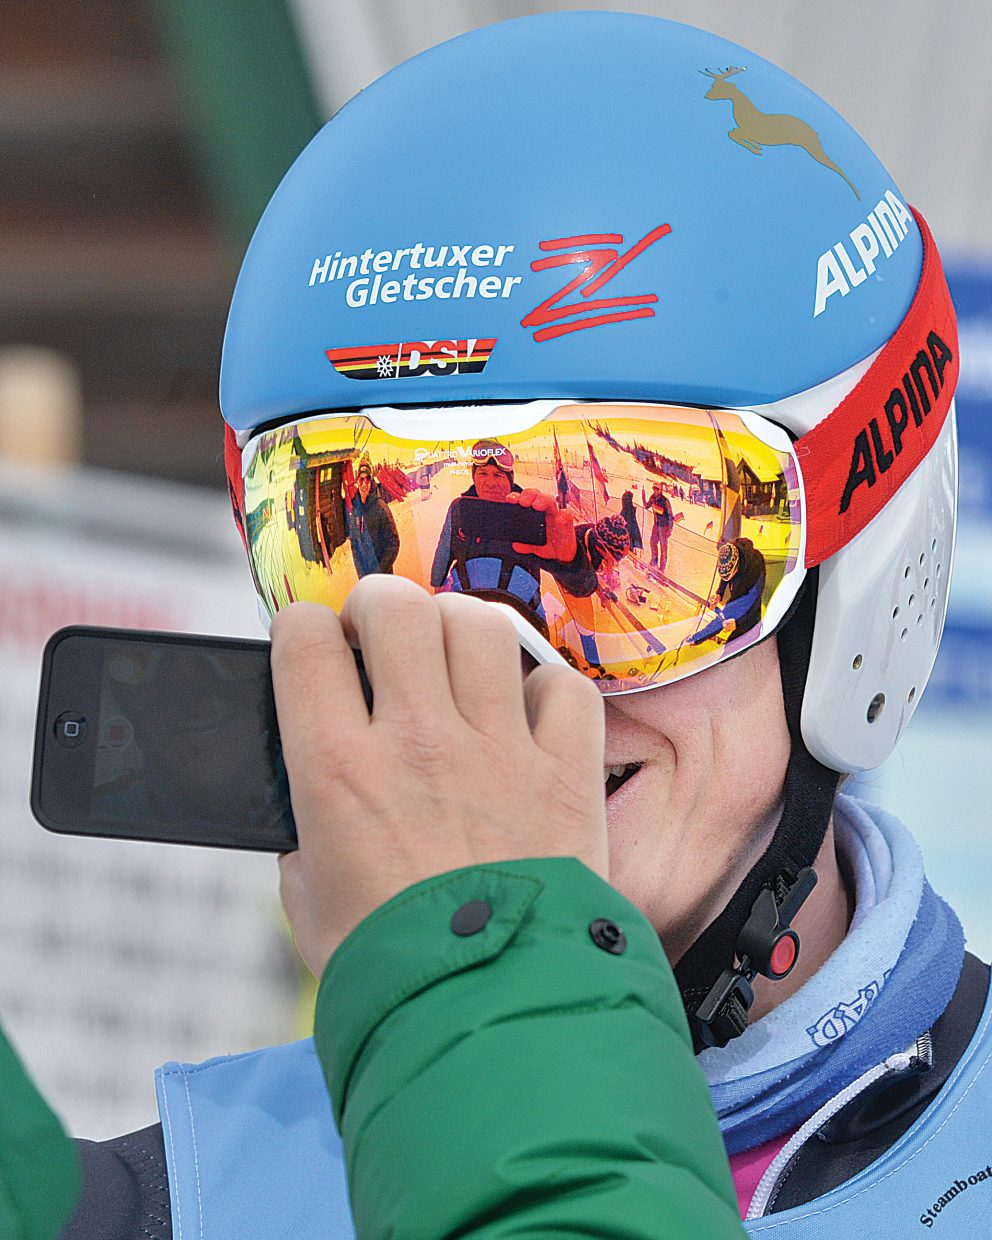 French skier Antoine Bouvier is videotaped by a coach after placing third in Thursday's men's parallel sprint at Howelsen Hill. The event was featured on the third day of the FIS Telemark World Cup, which is taking place in Steamboat Springs this week. The World Championships will continue Friday at 10:30 a.m. with the classic race on Vagabond at Steamboat Ski Area.